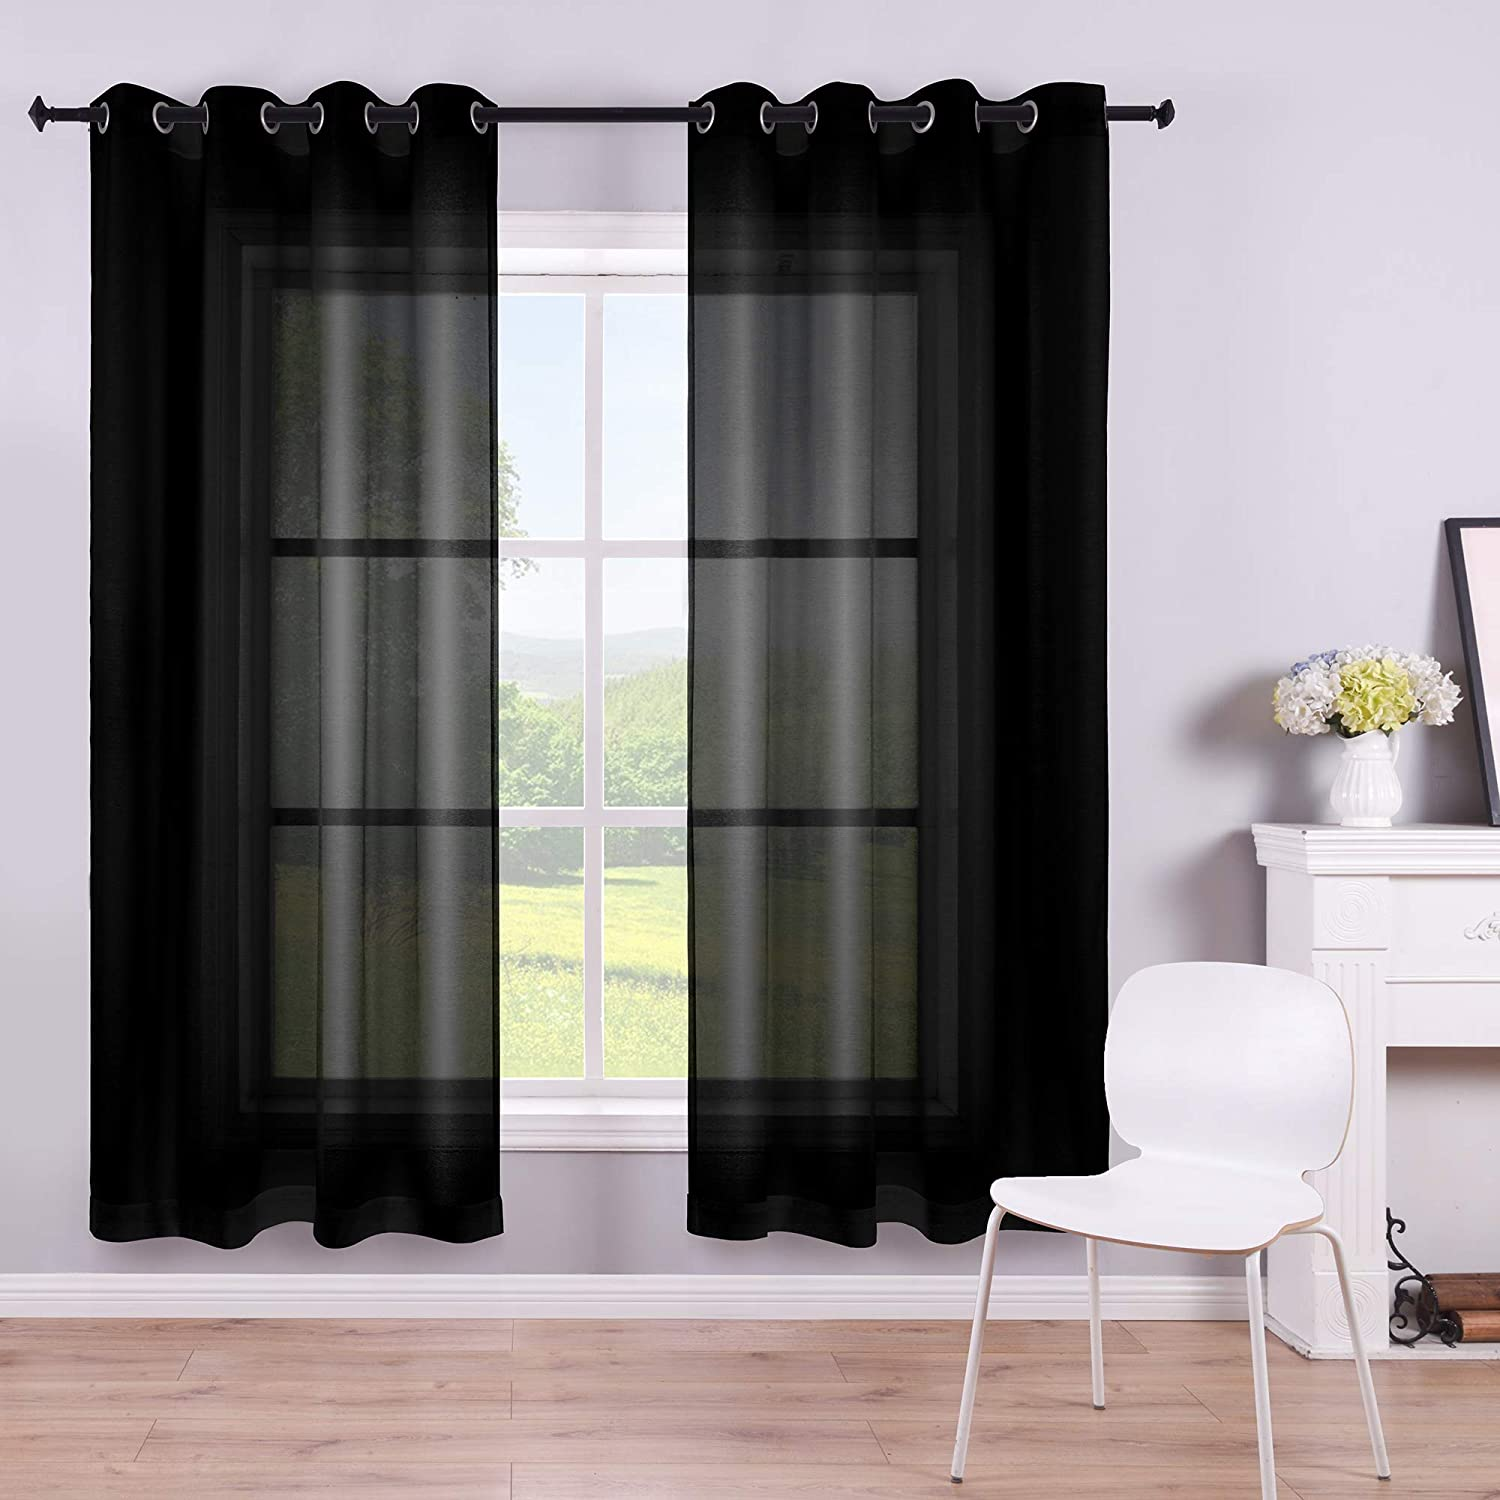 KOUFALL Black Sheer Curtains 63 Inch Length for Bedroom Set of 2 Panels Grommet Faux Linen Semi Voile Window Drapes Elegant Office Curtains for Men Living Room 52x63 Inches Long